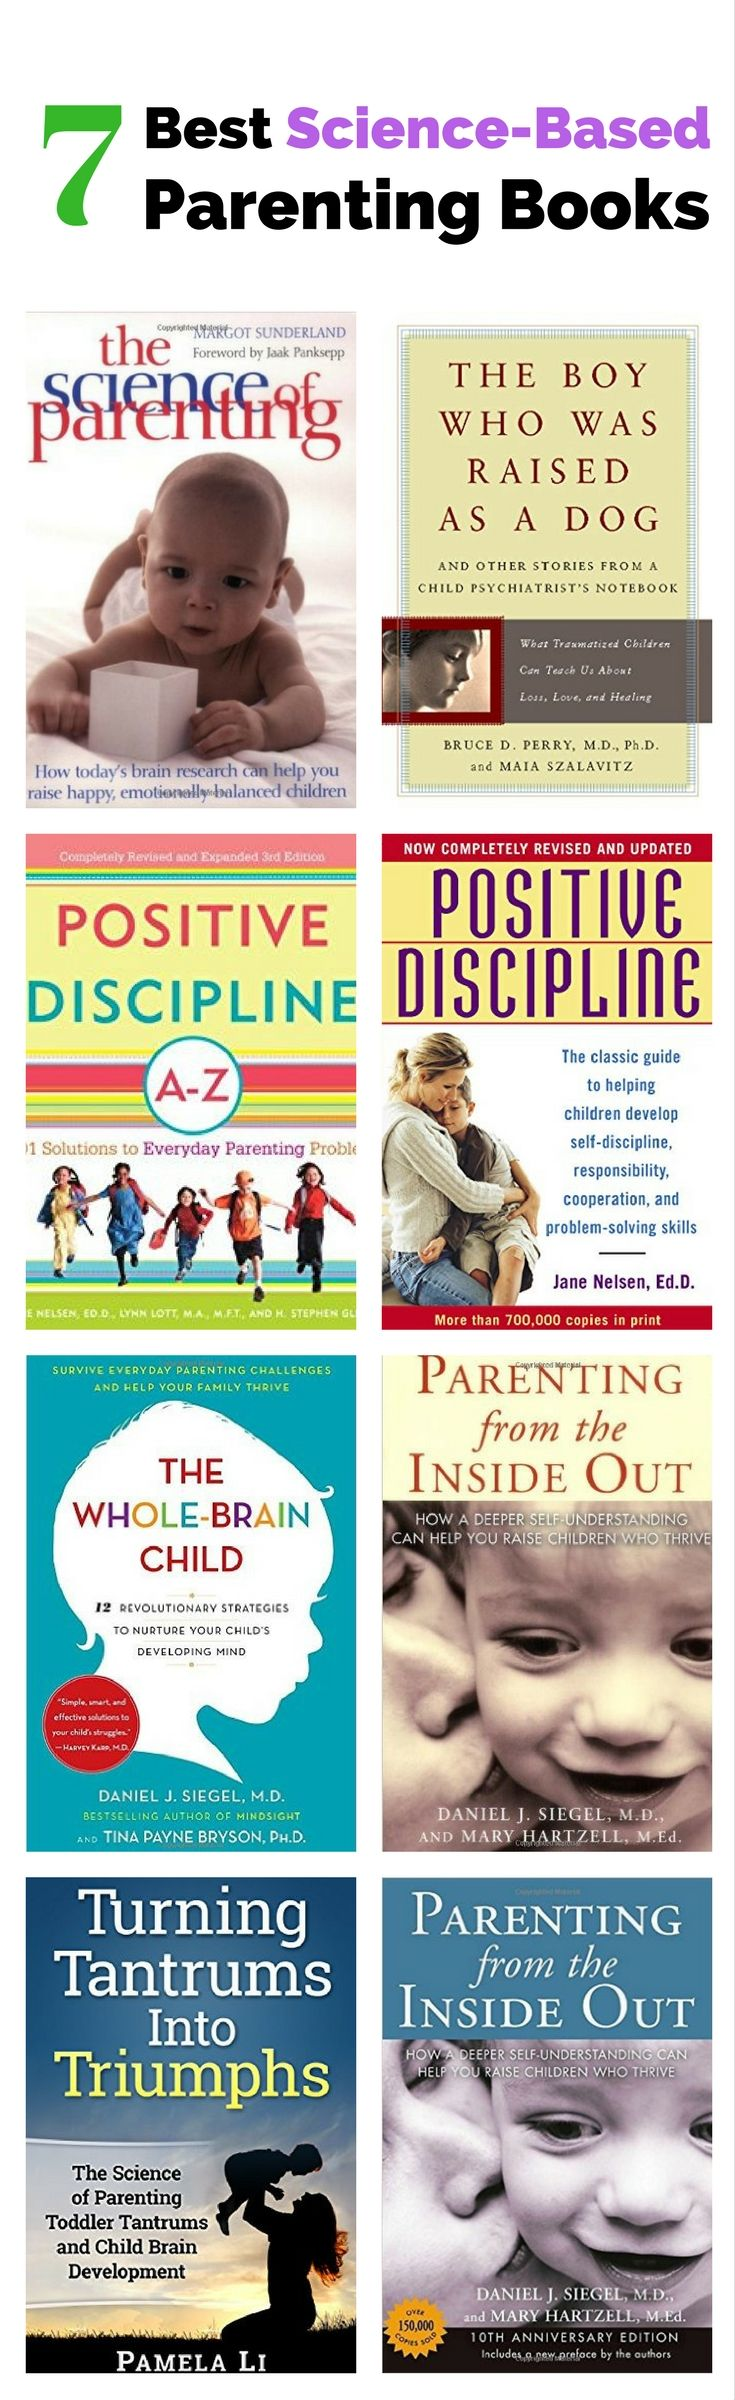 Best Parenting Books   Science-Based Parenting Resource